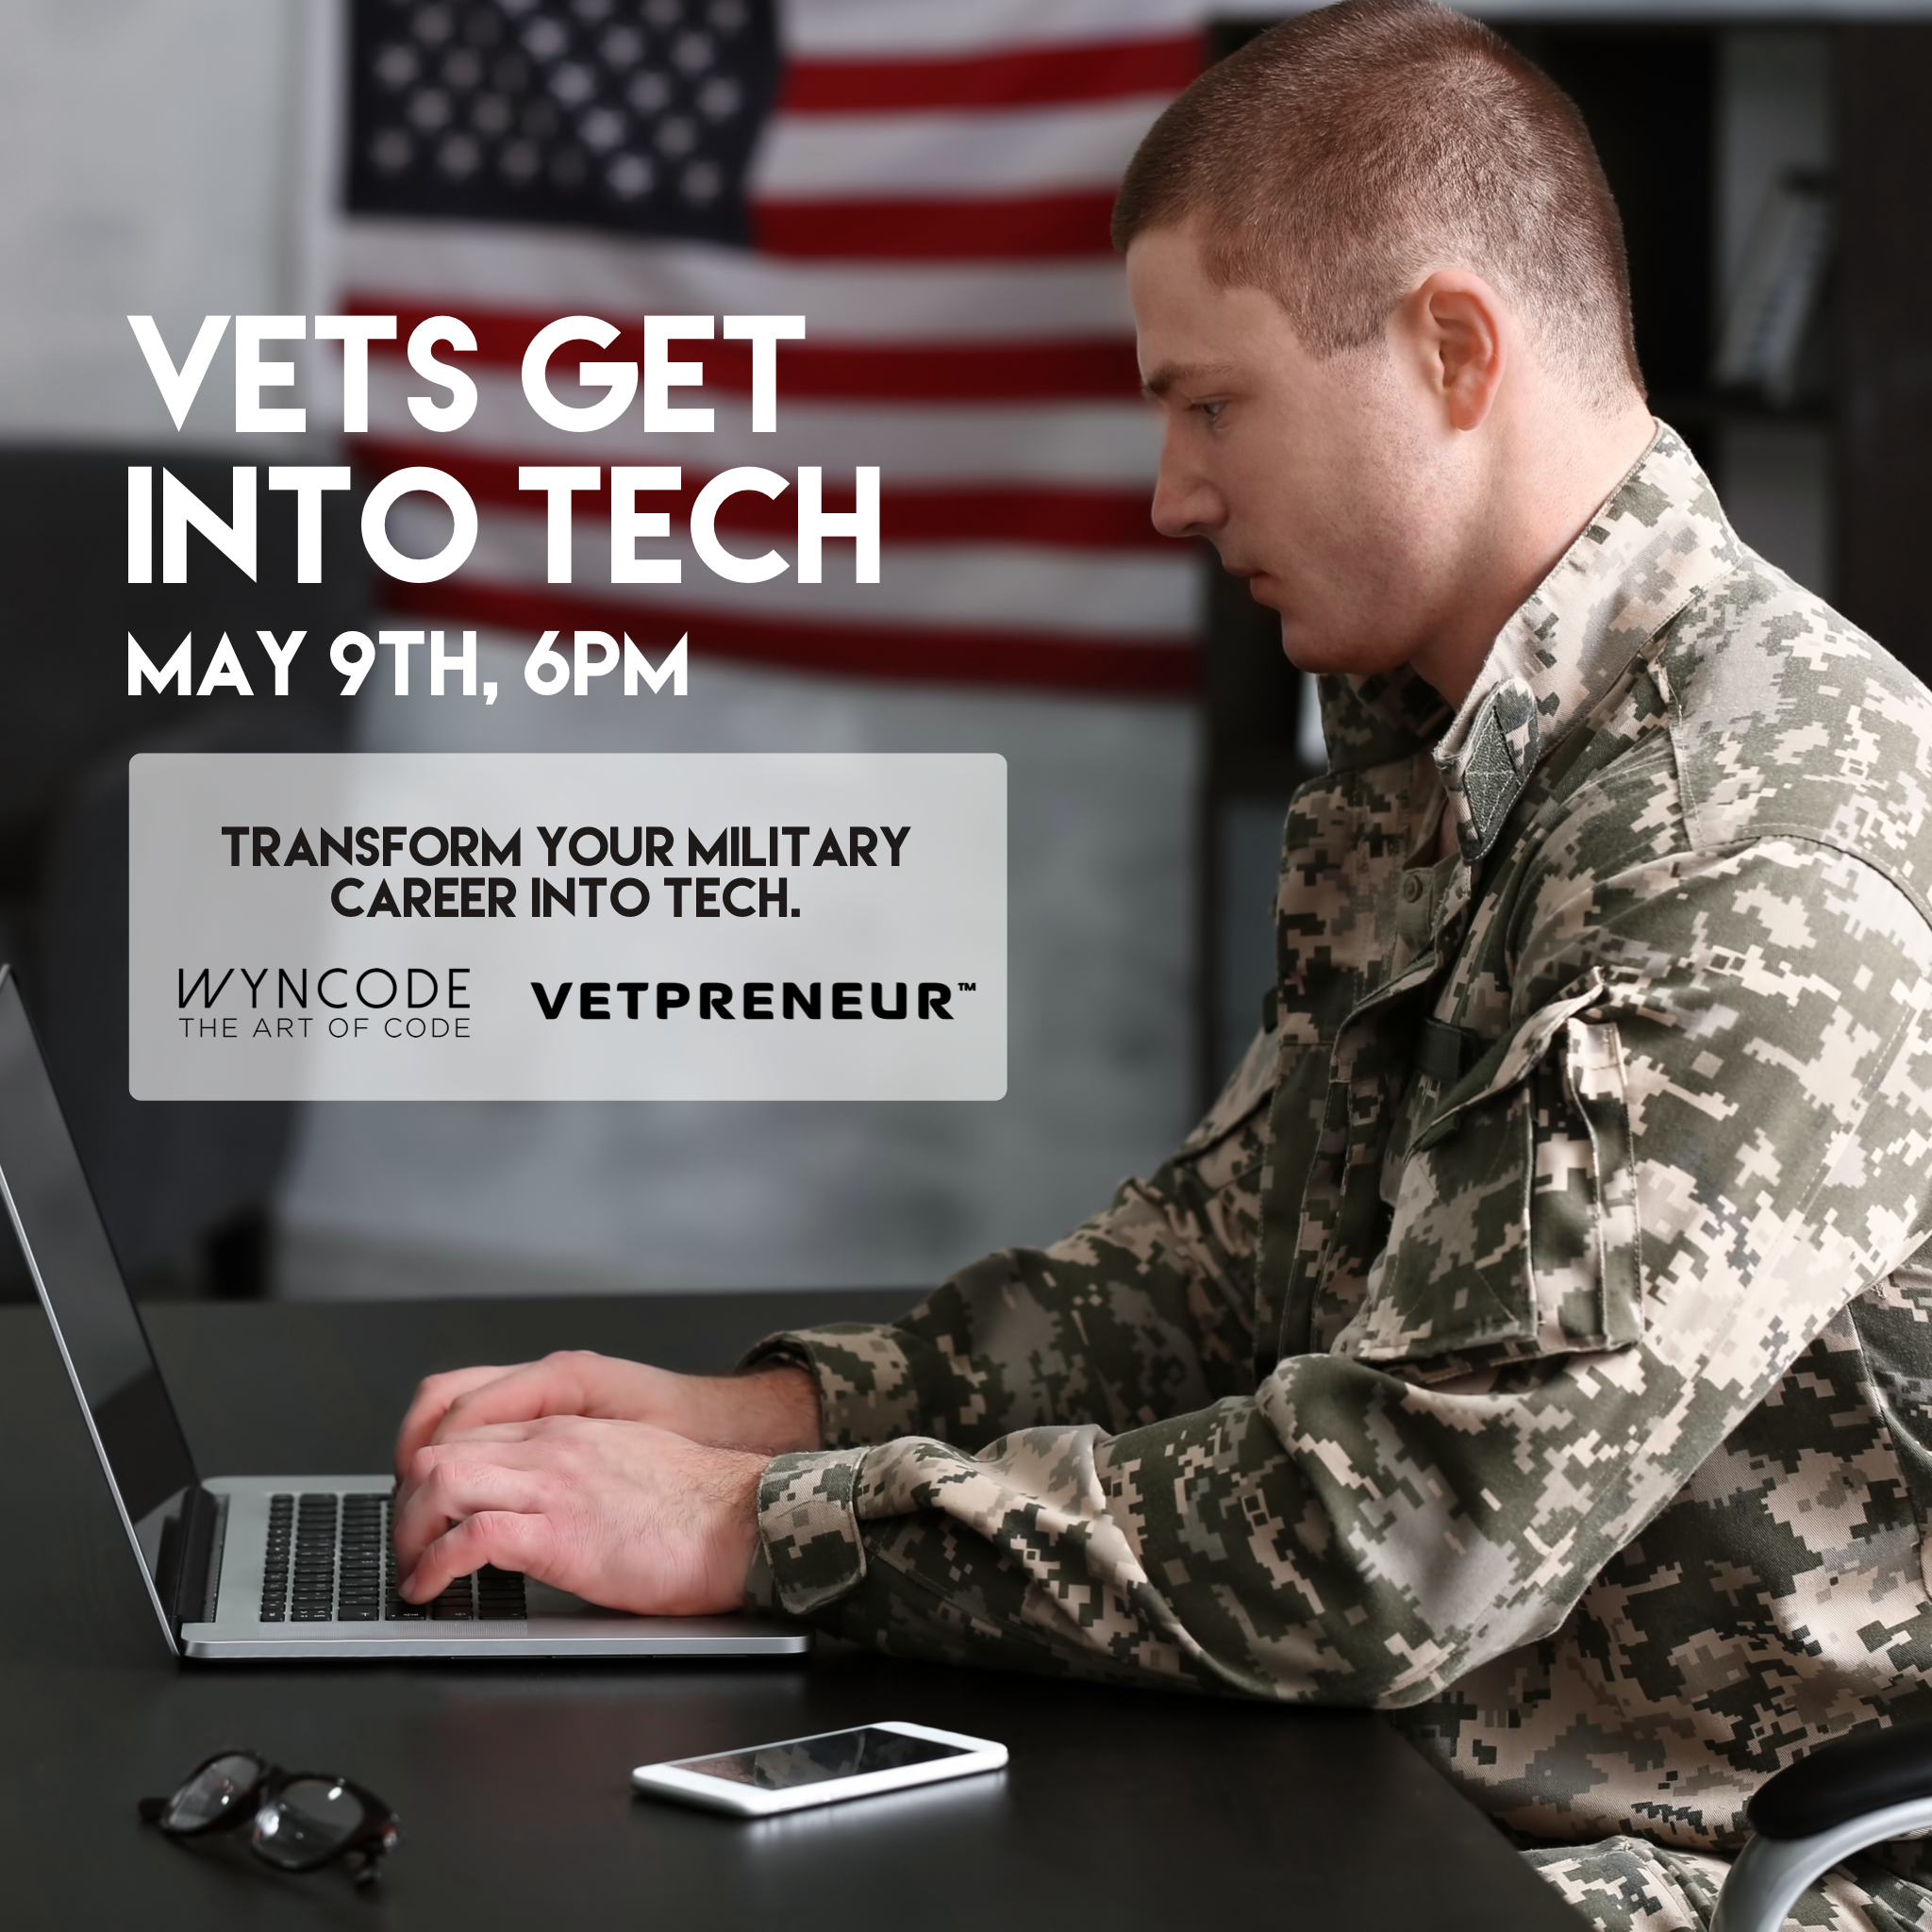 Vets Get Into Tech hosted with Vetpreneur Tech career